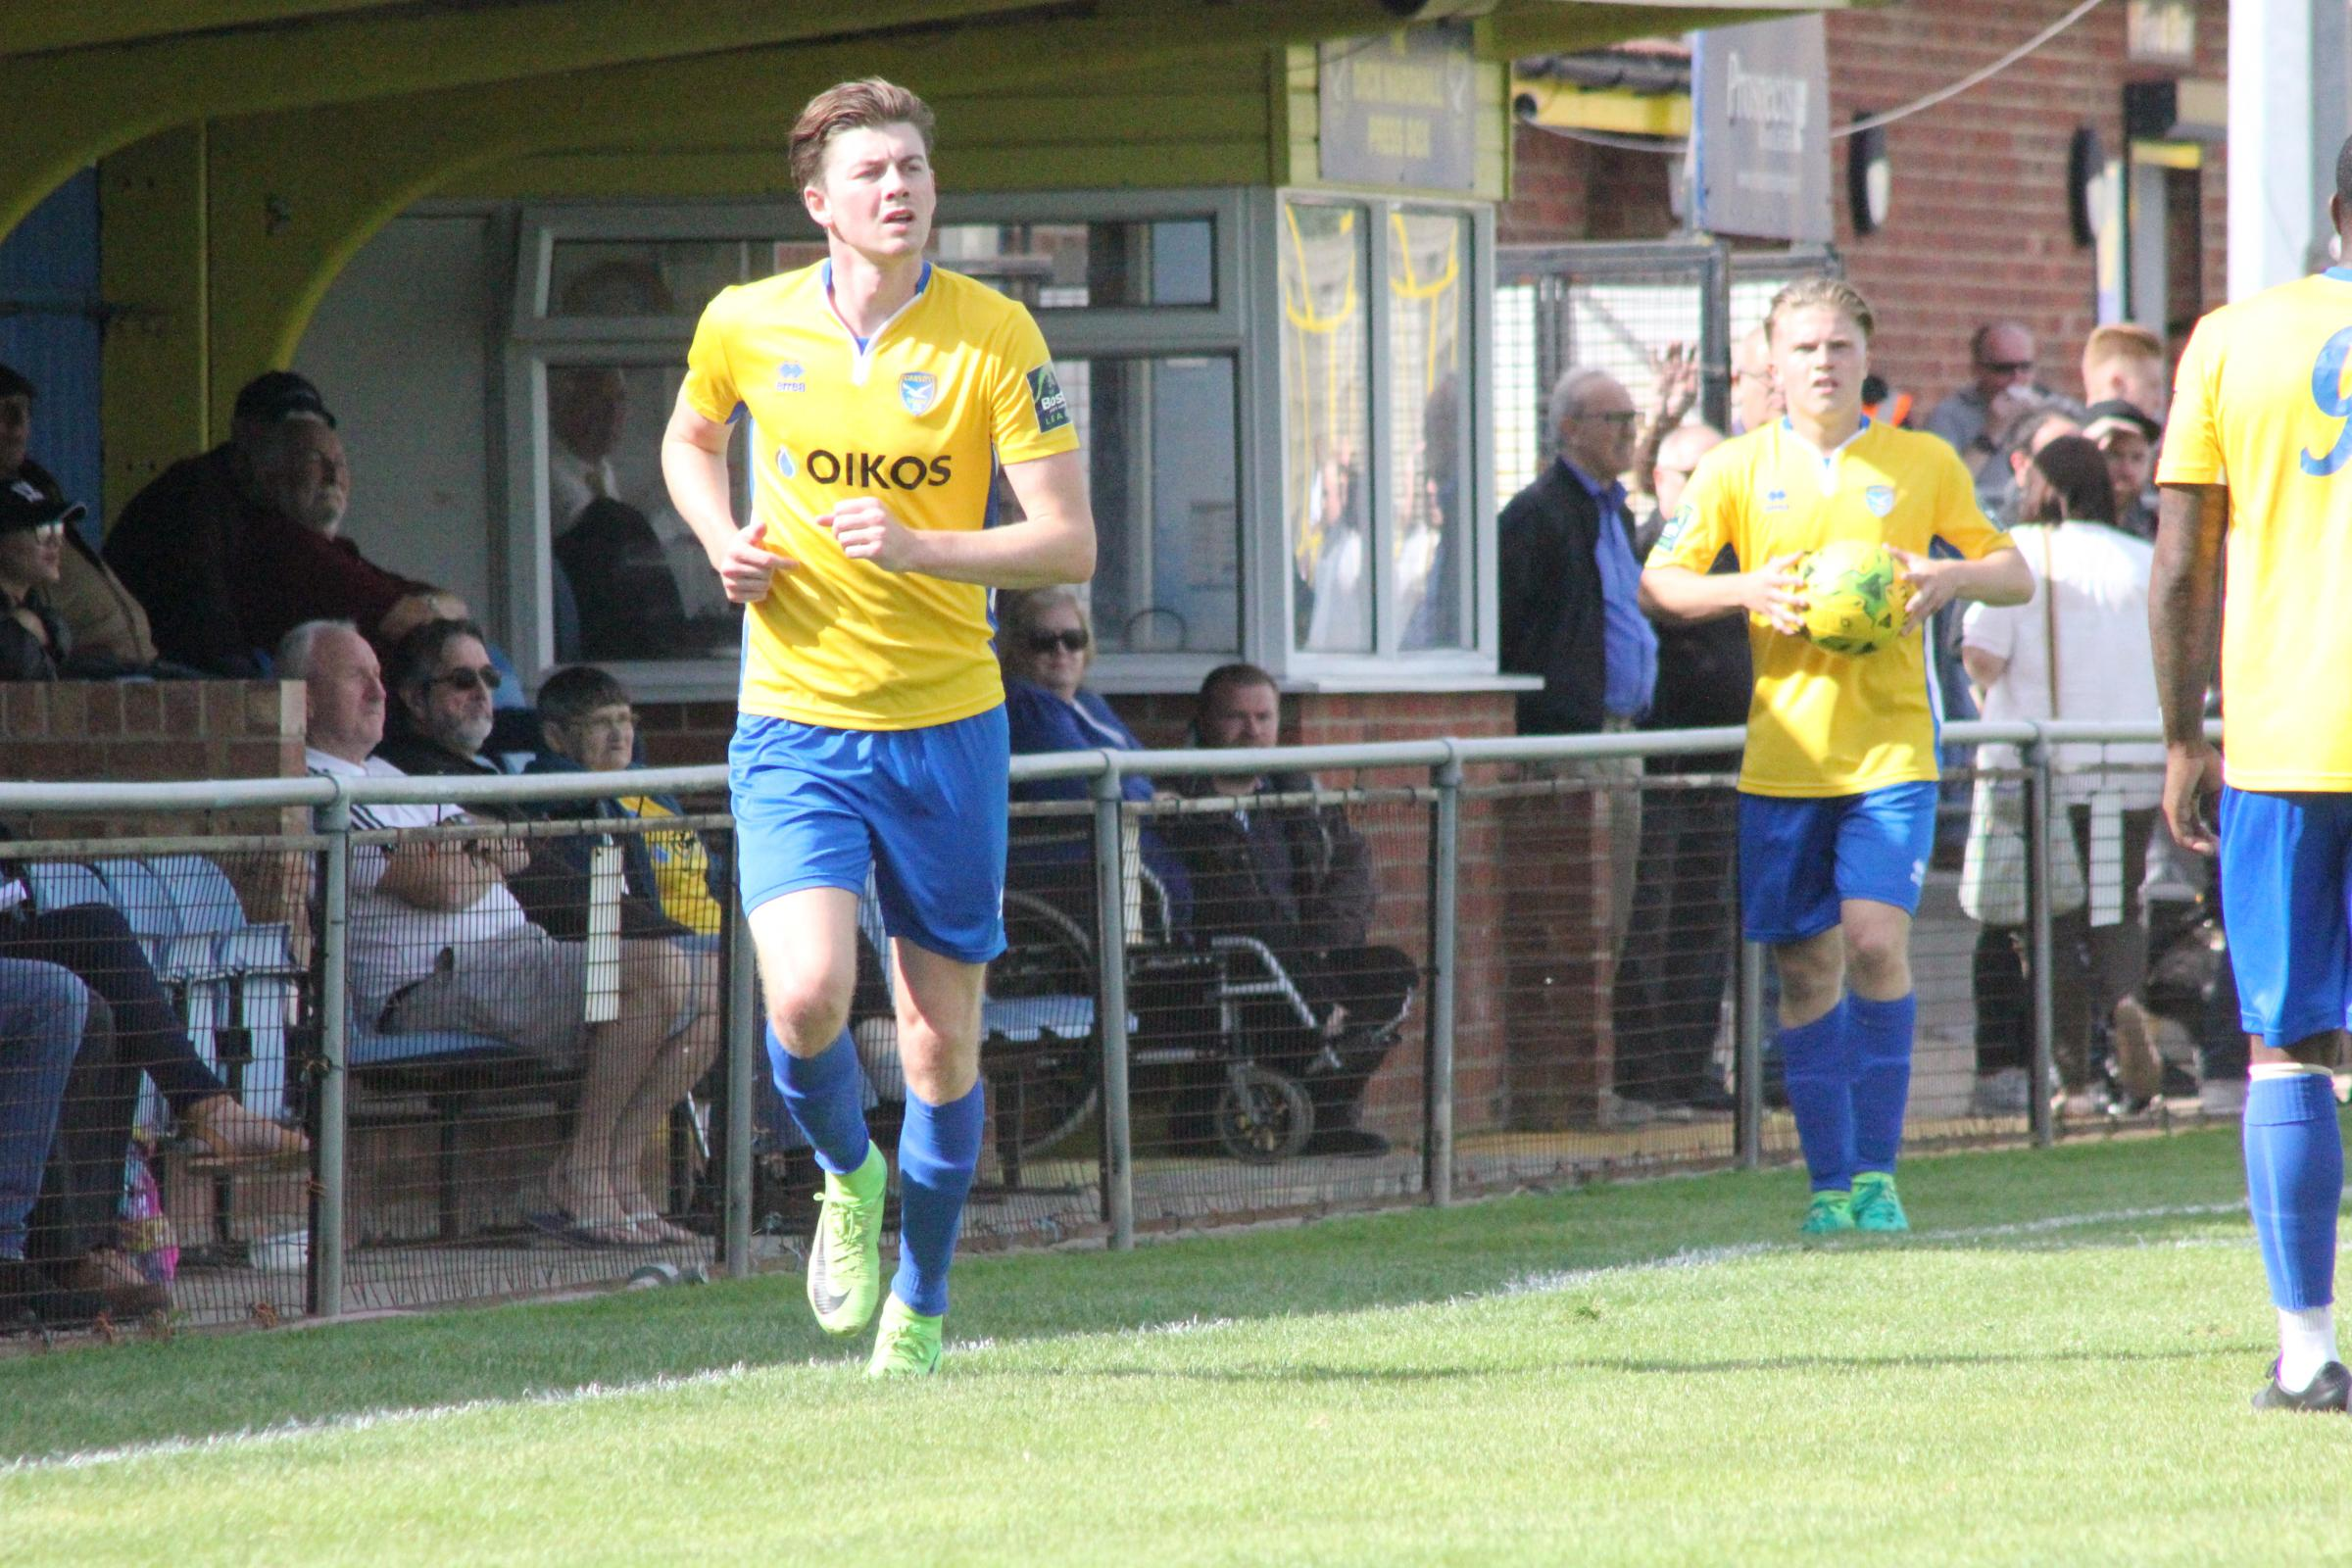 On a roll - Canvey Island striker George Sykes has 12 goals so far this season	  		Picture: KJA SPORTS IMAGES